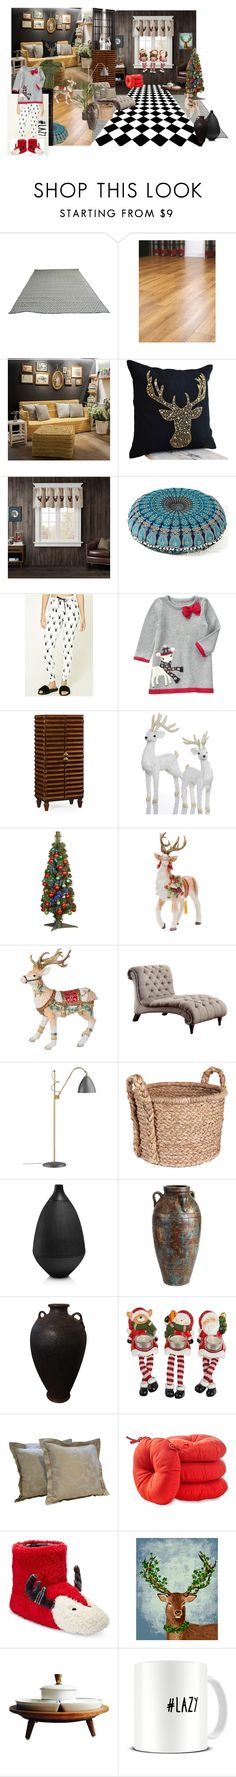 """""""Deer"""" by claudia-regina-vieira-correa ❤ liked on Polyvore featuring interior, interiors, interior design, home, home decor, interior decorating, Forever 21, Jonathan Charles Fine Furniture, Holiday Lane and National Tree Company"""